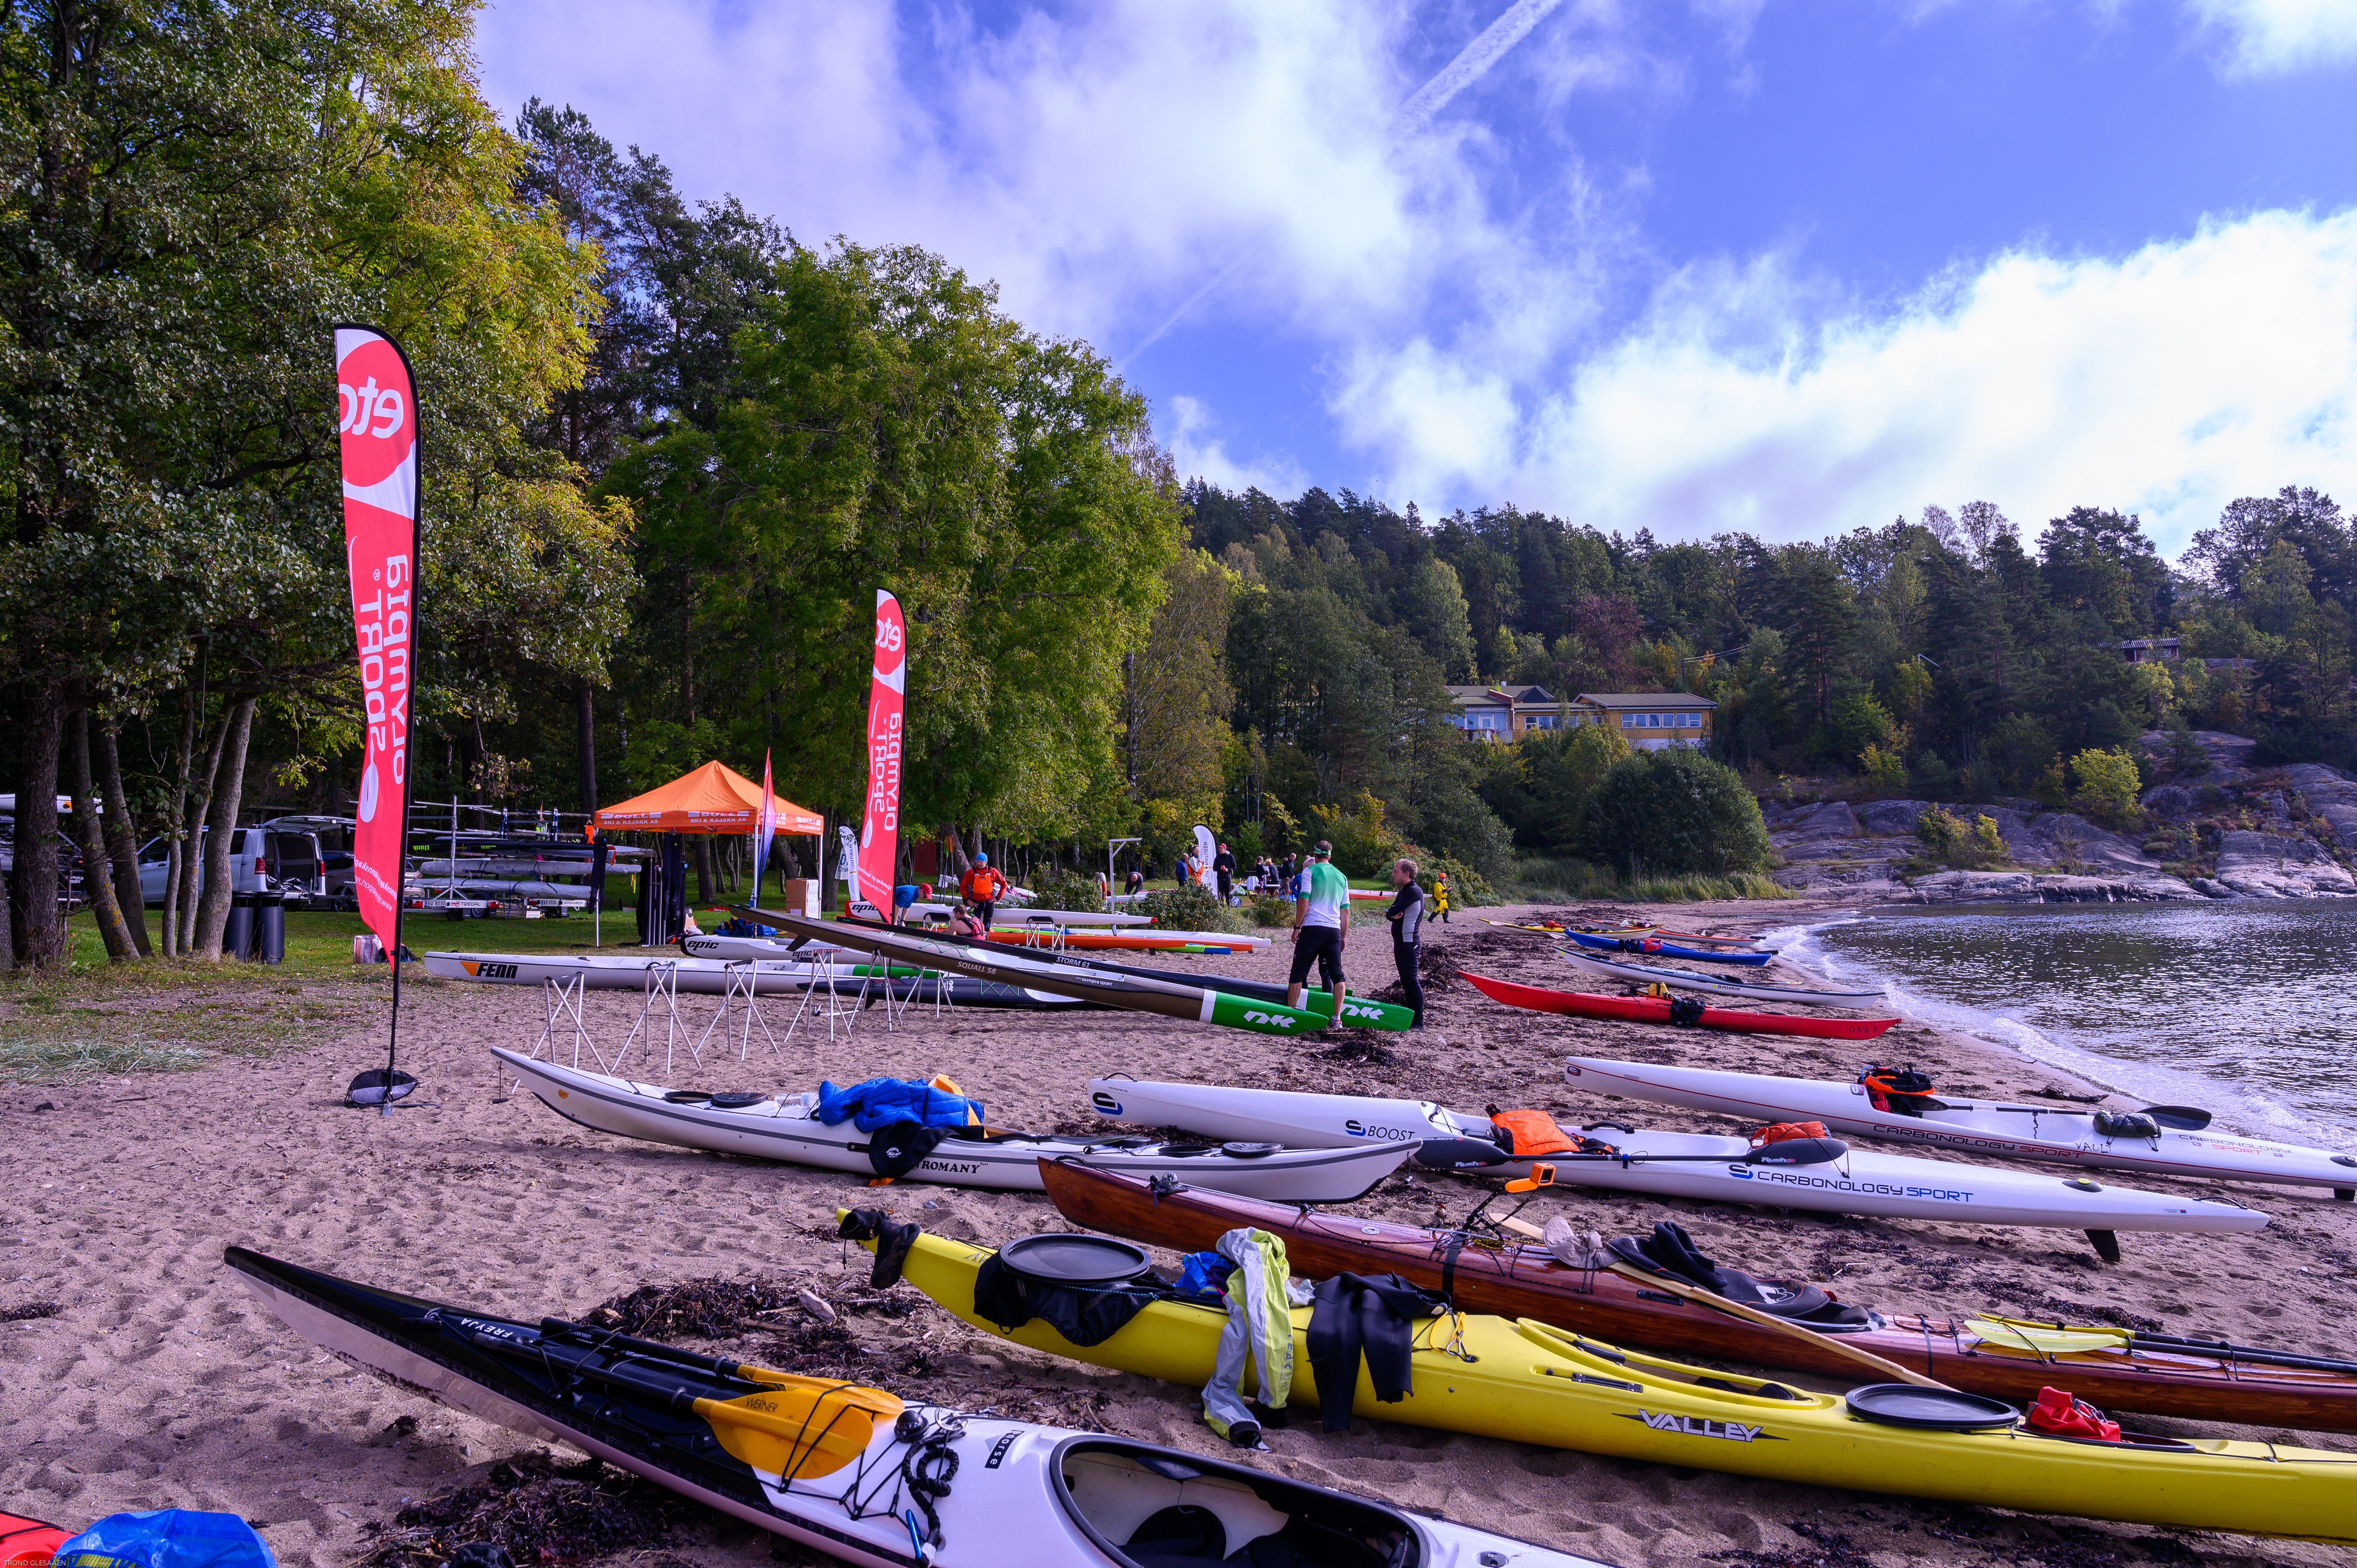 2019-09-22-Demodag-Surfski-Skipelle-Drøbak-028